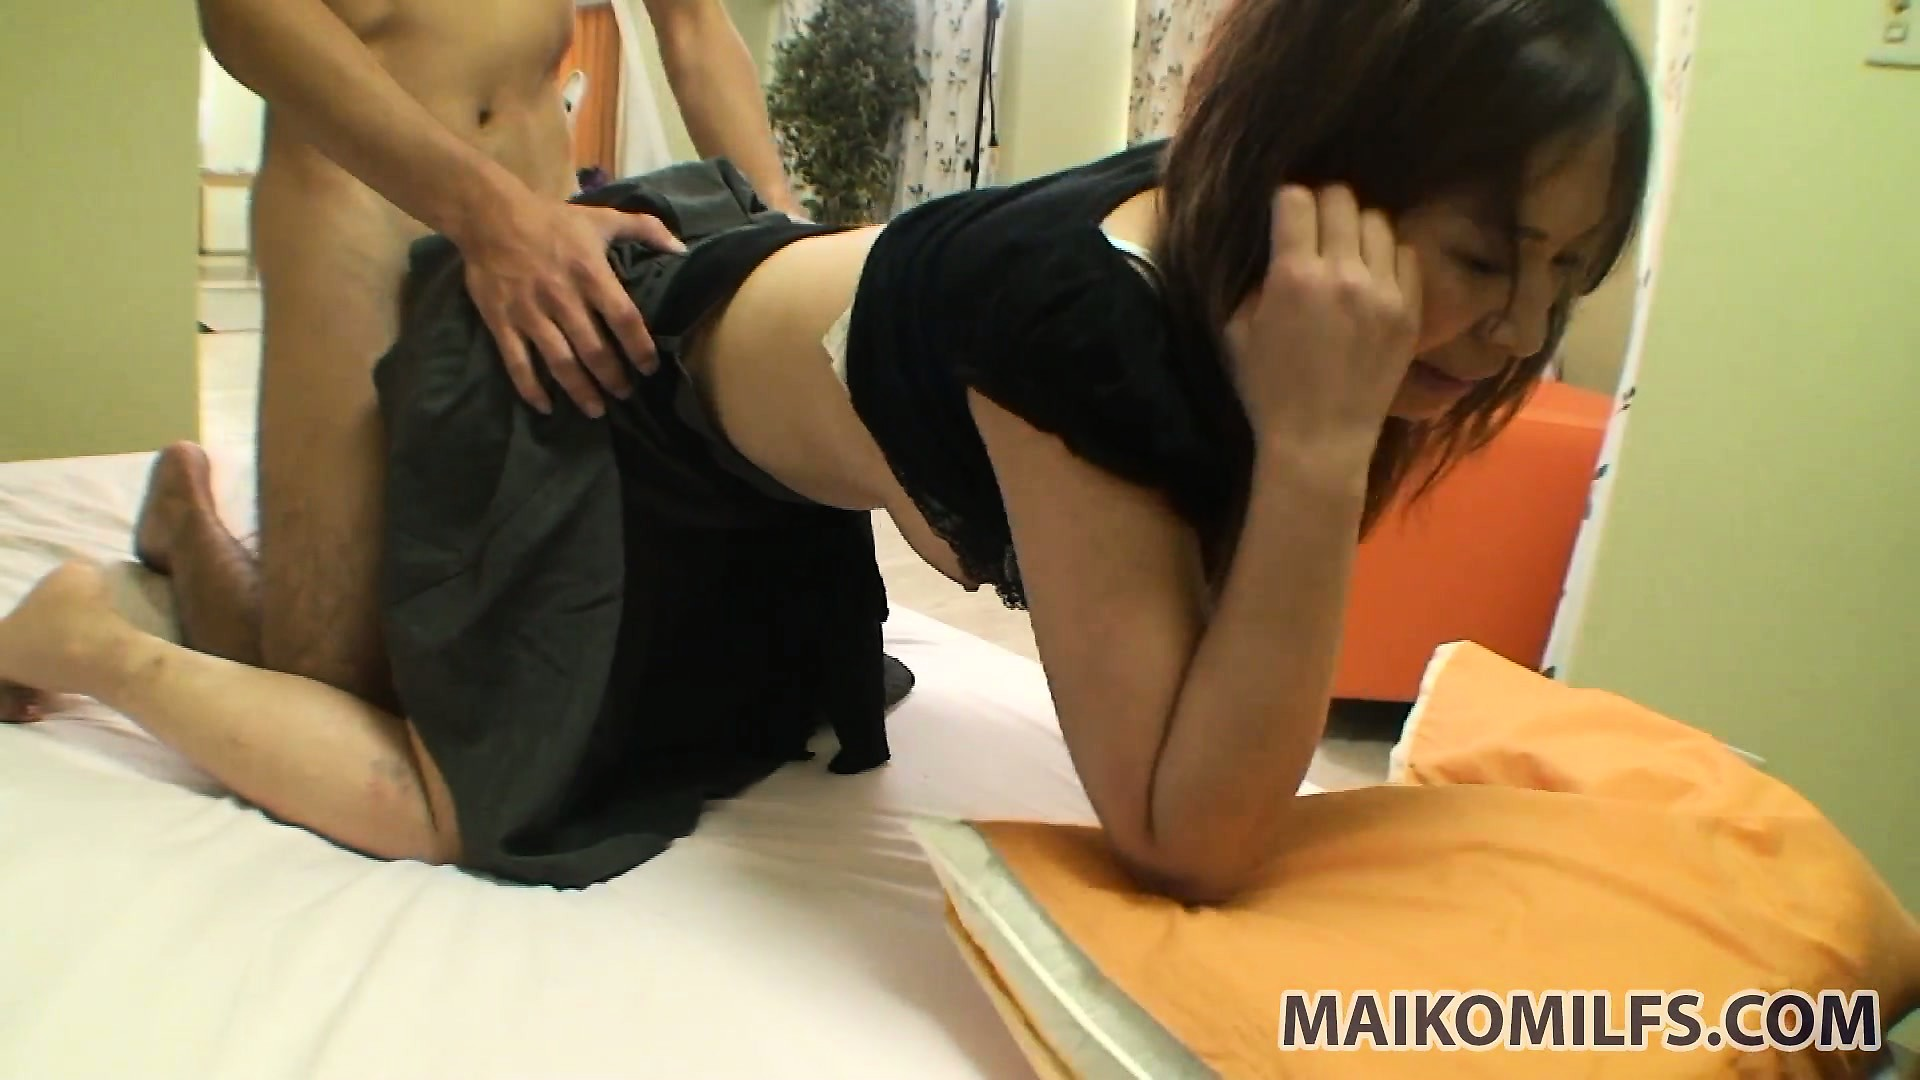 Porno Video of Pulling A Lovely Asian Chick's Skirt Up And Plowing Her Fresh Snatch